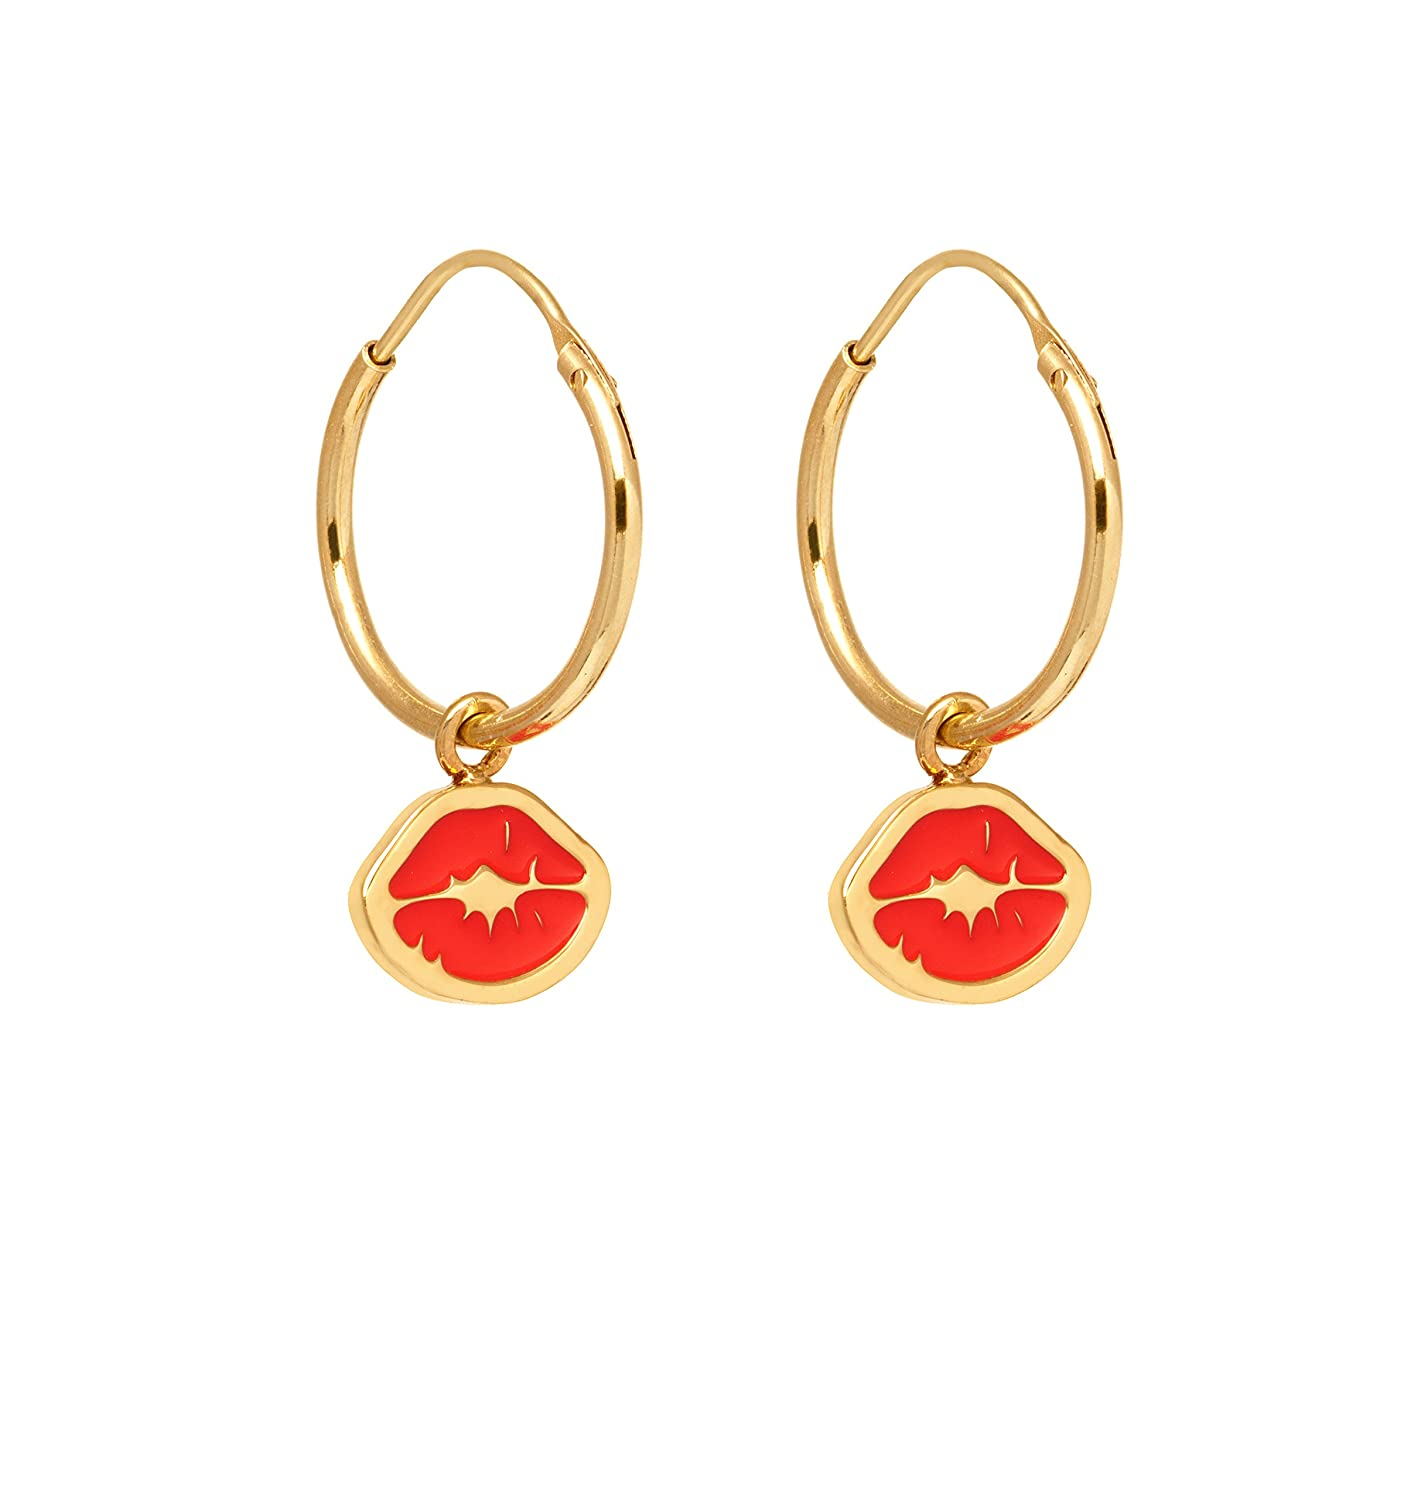 0d89118a11655 Maria Francesca Pepe Gold Plated Brass Red Kiss Stamp Charms Hoop Earrings